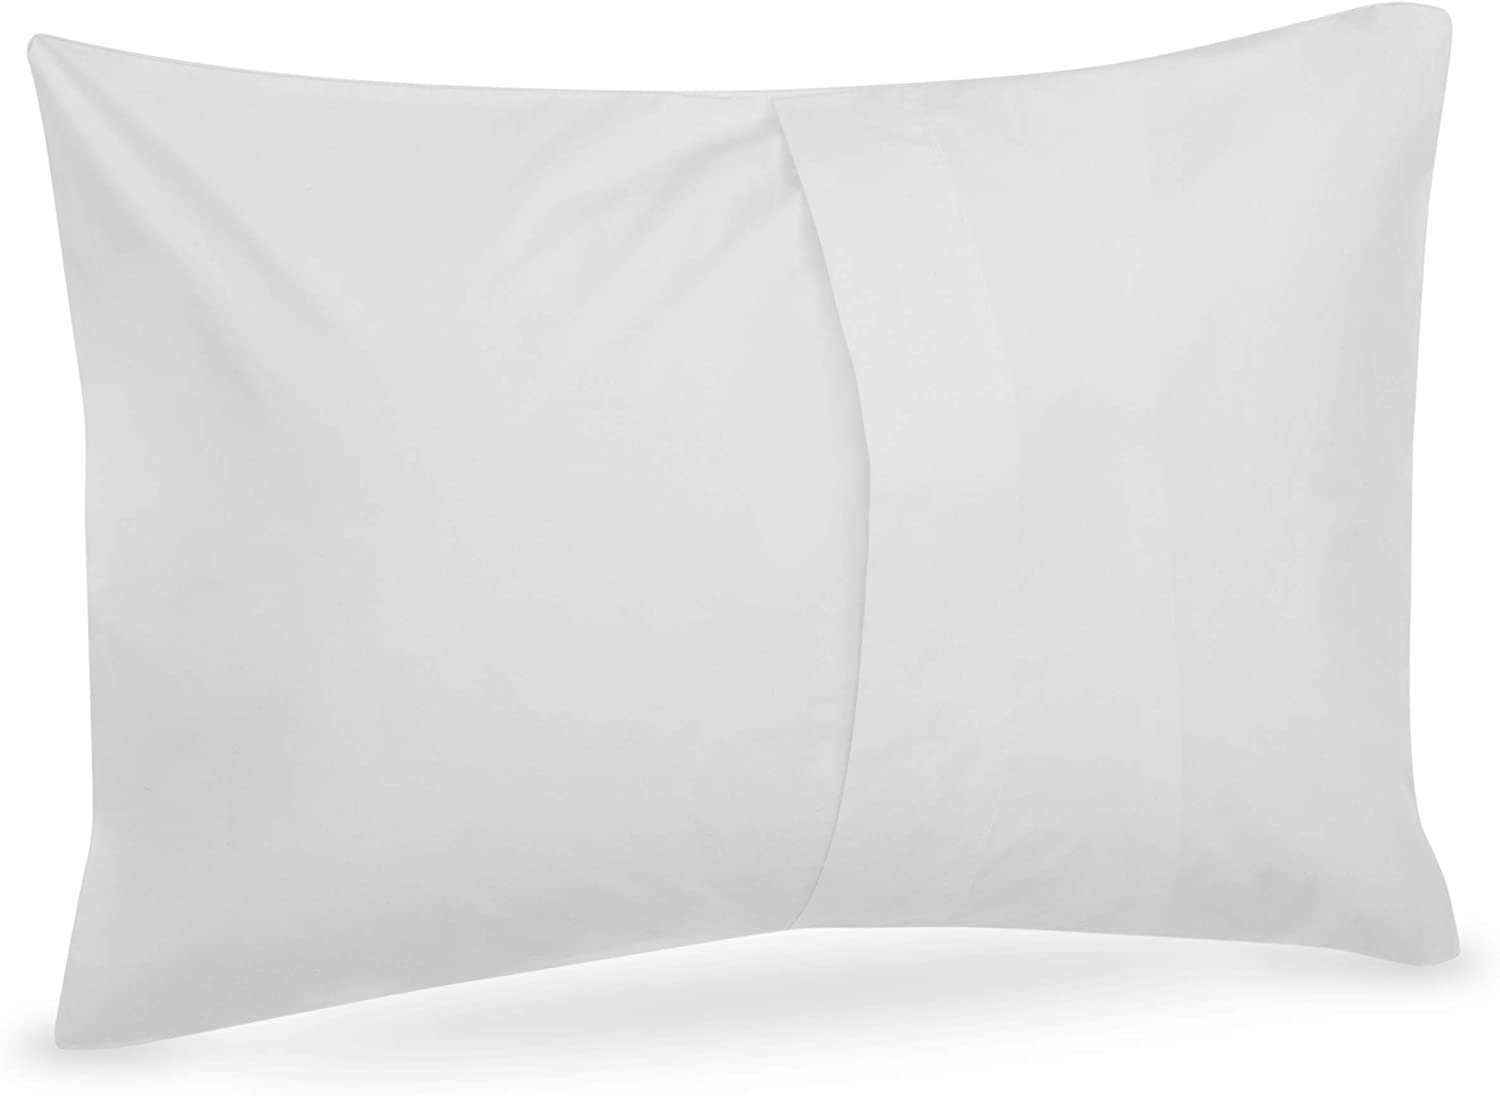 Online limited product ComfyDown Pillowcase for Toddler Travel Al sold out. Pillows Pack - 2 Bre